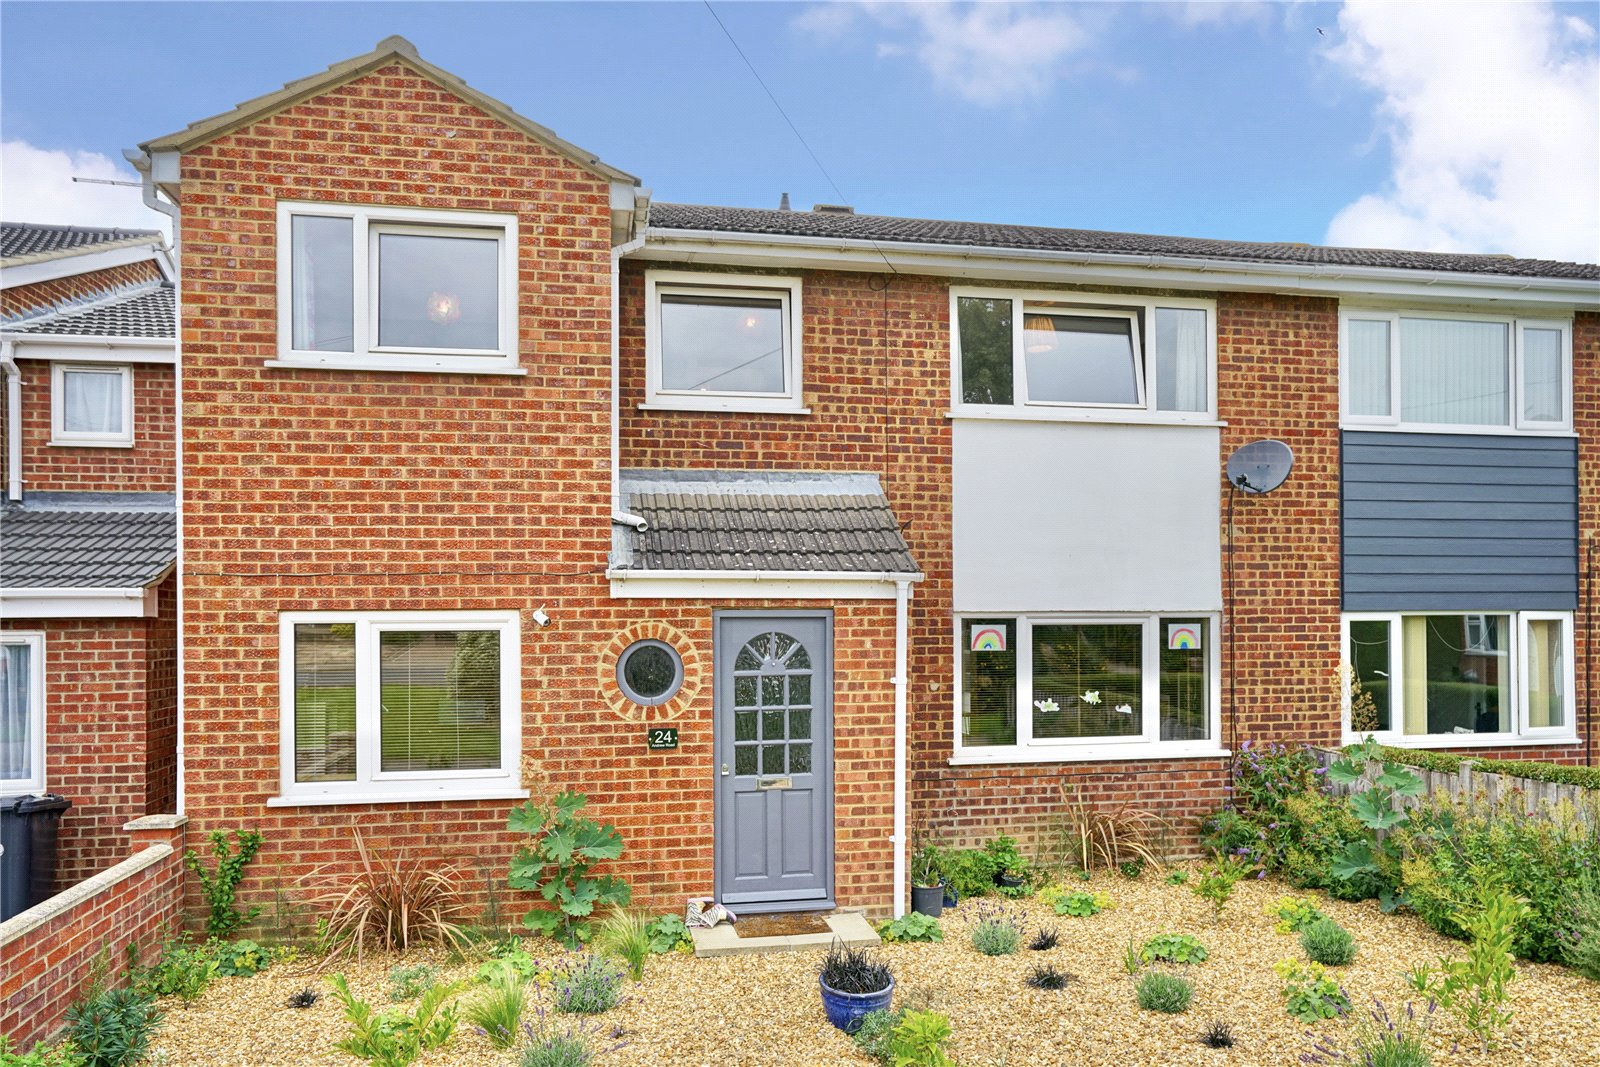 4 bed house for sale in Eynesbury, Andrew Road, PE19 2QE, PE19